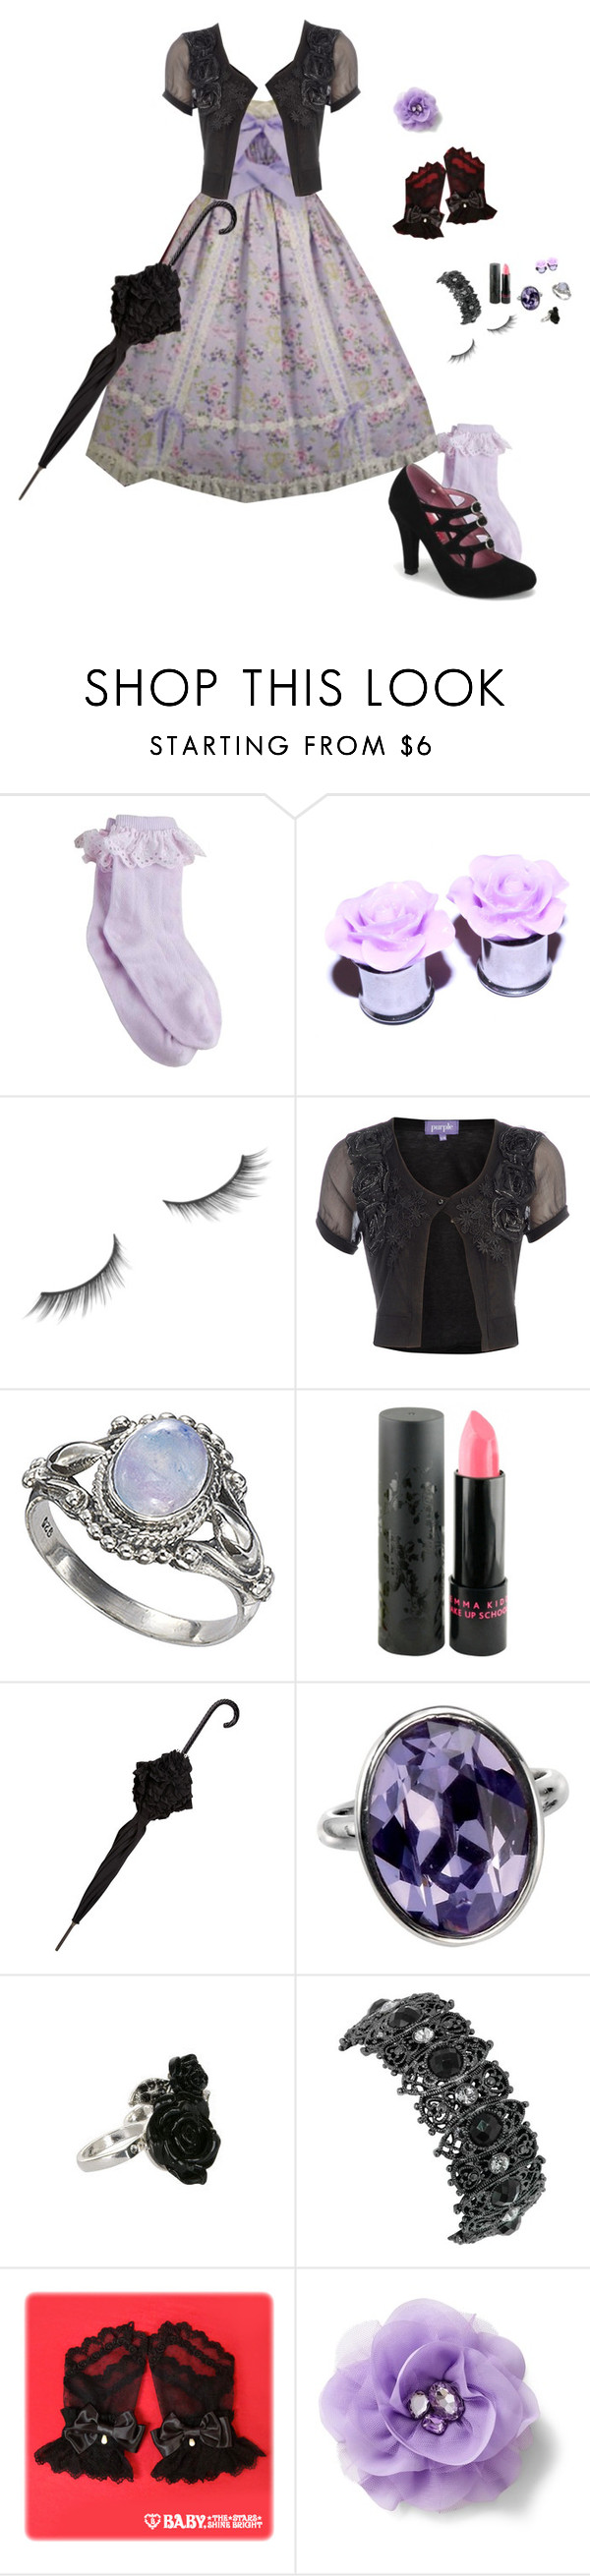 """""""Freshy"""" by caaandy ❤ liked on Polyvore featuring Benefit, Dorothy Perkins, Jemma Kidd, Mimco, Metropark, 1928 and White House Black Market"""